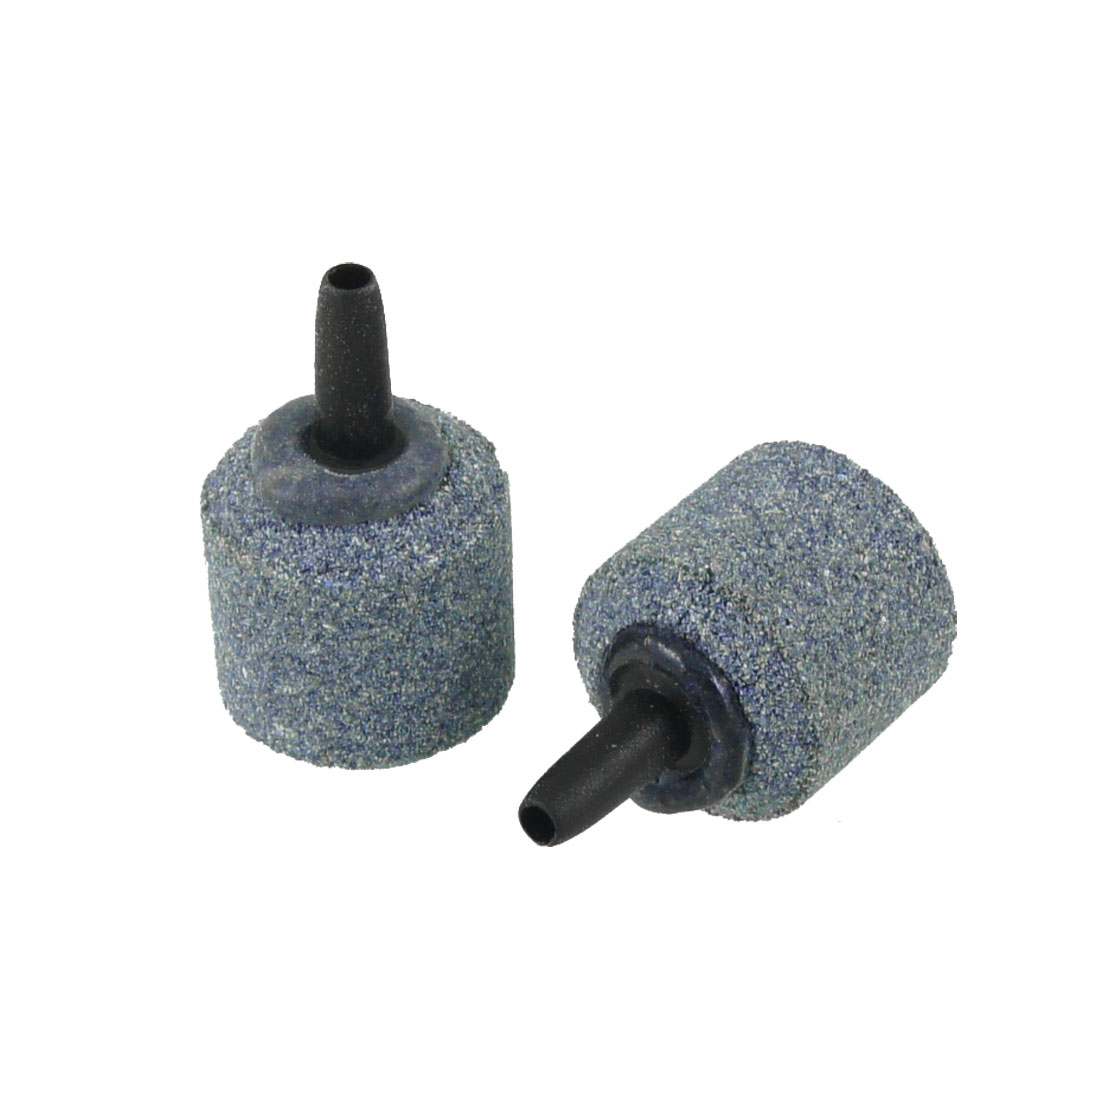 2 Pcs 4.1mm Air Tube Dark Gray Mineral Release Bubbles Airstone for Aquarium